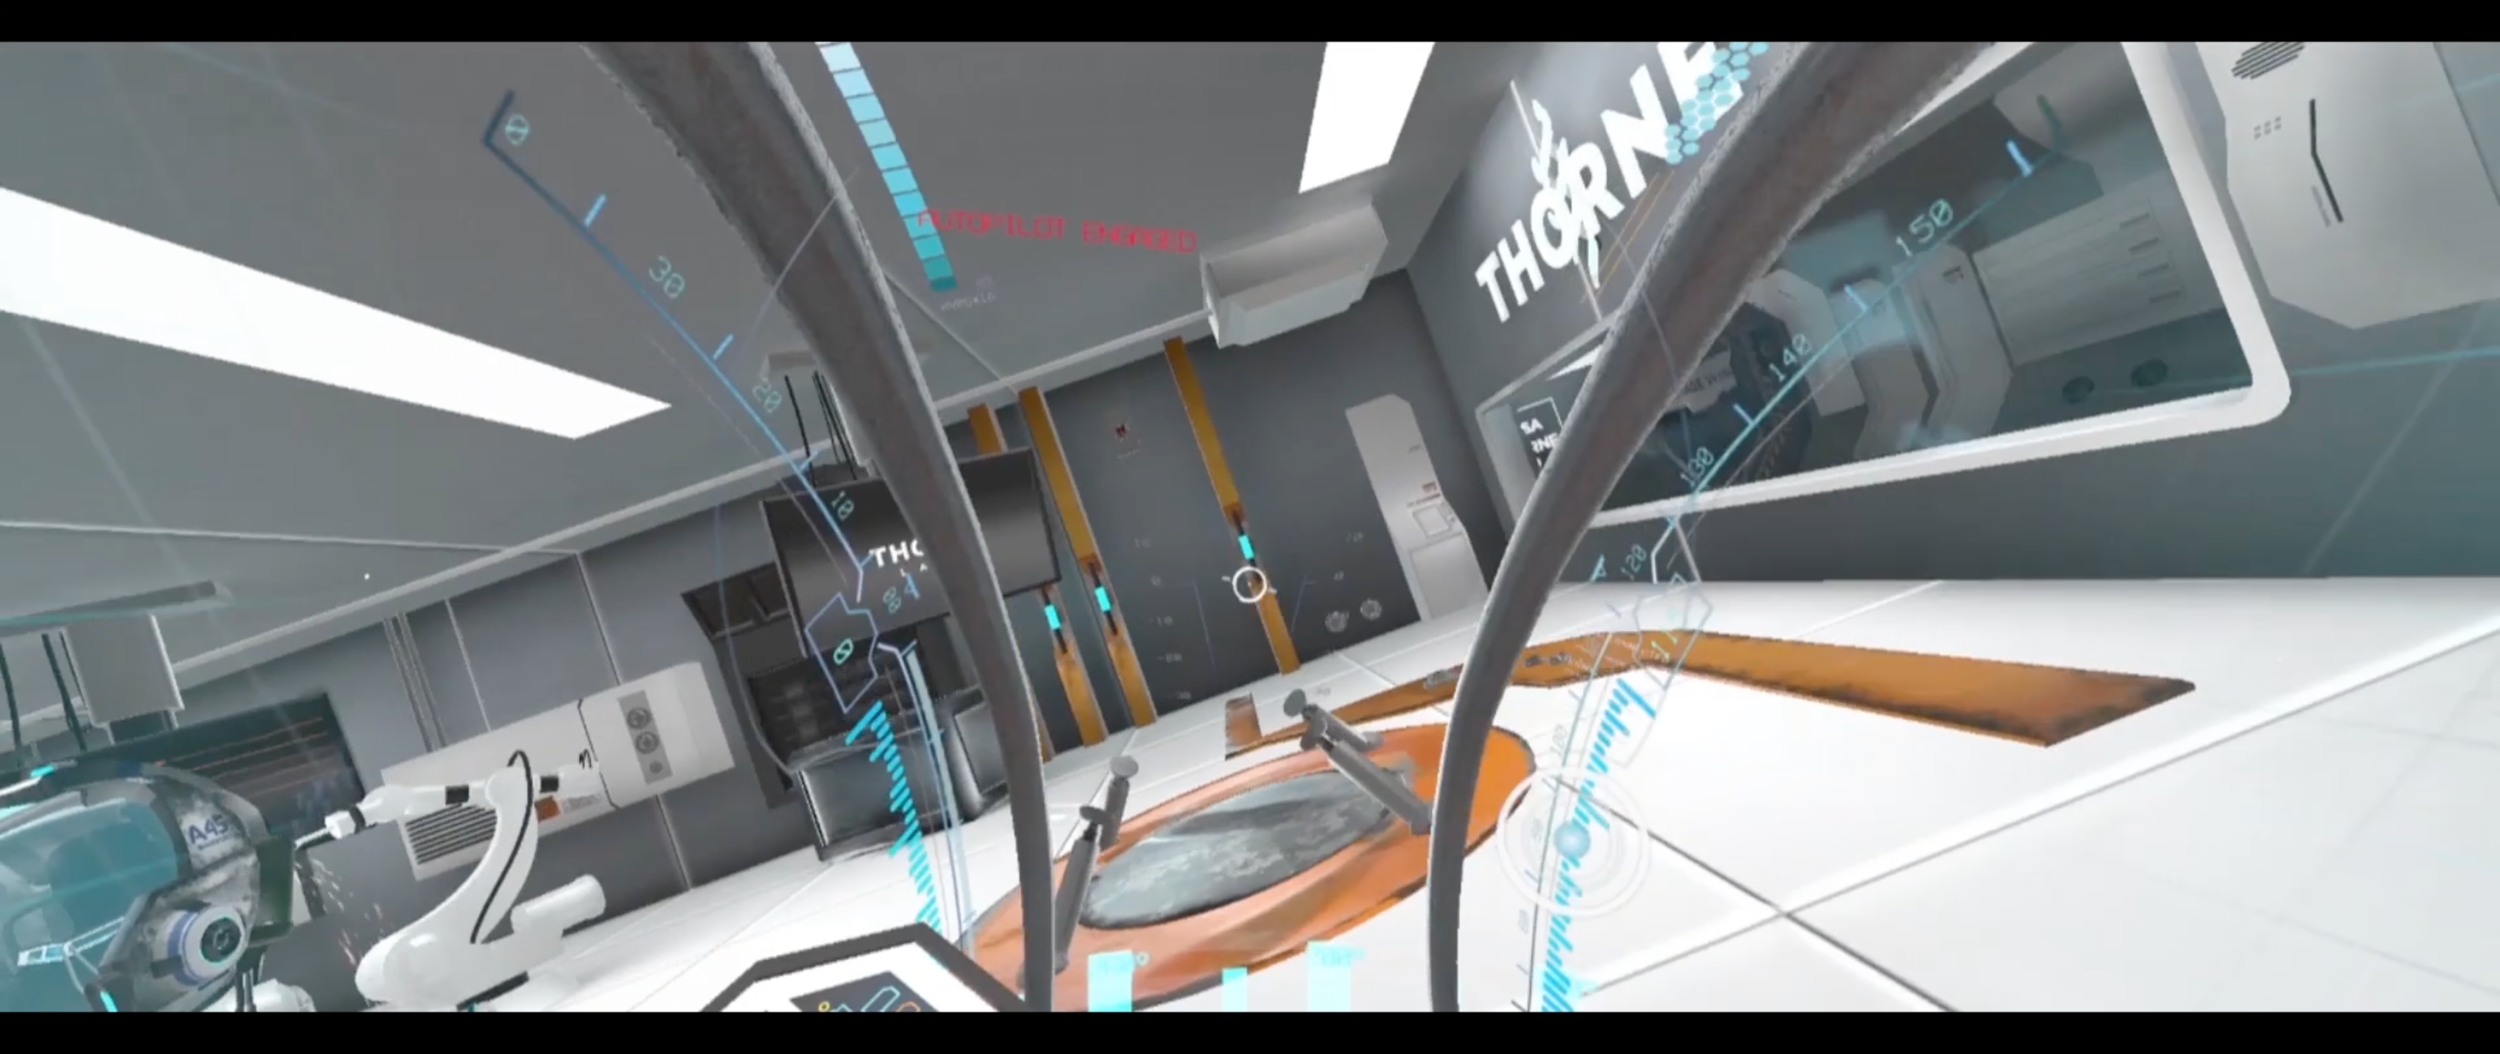 """""""Anomalie""""- The VR Experience    Modeling, Texturing, HUD Design by Lauren Valko. Client: Krush Technologies    